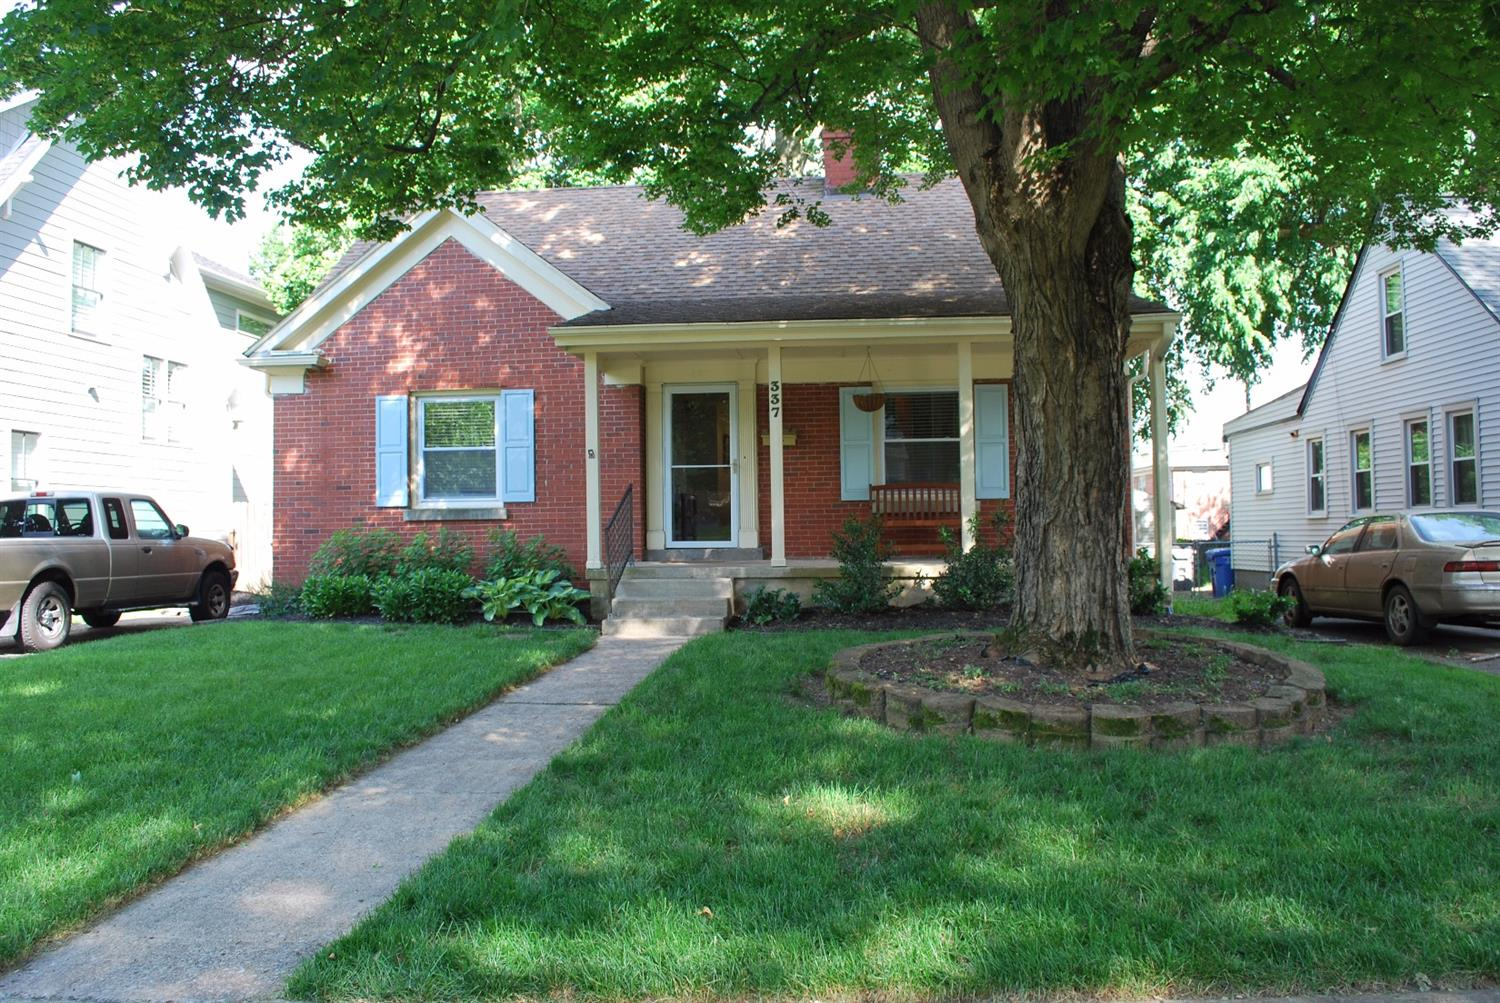 Home For Sale at 319 Ridgeway Rd, Lexington, KY 40502